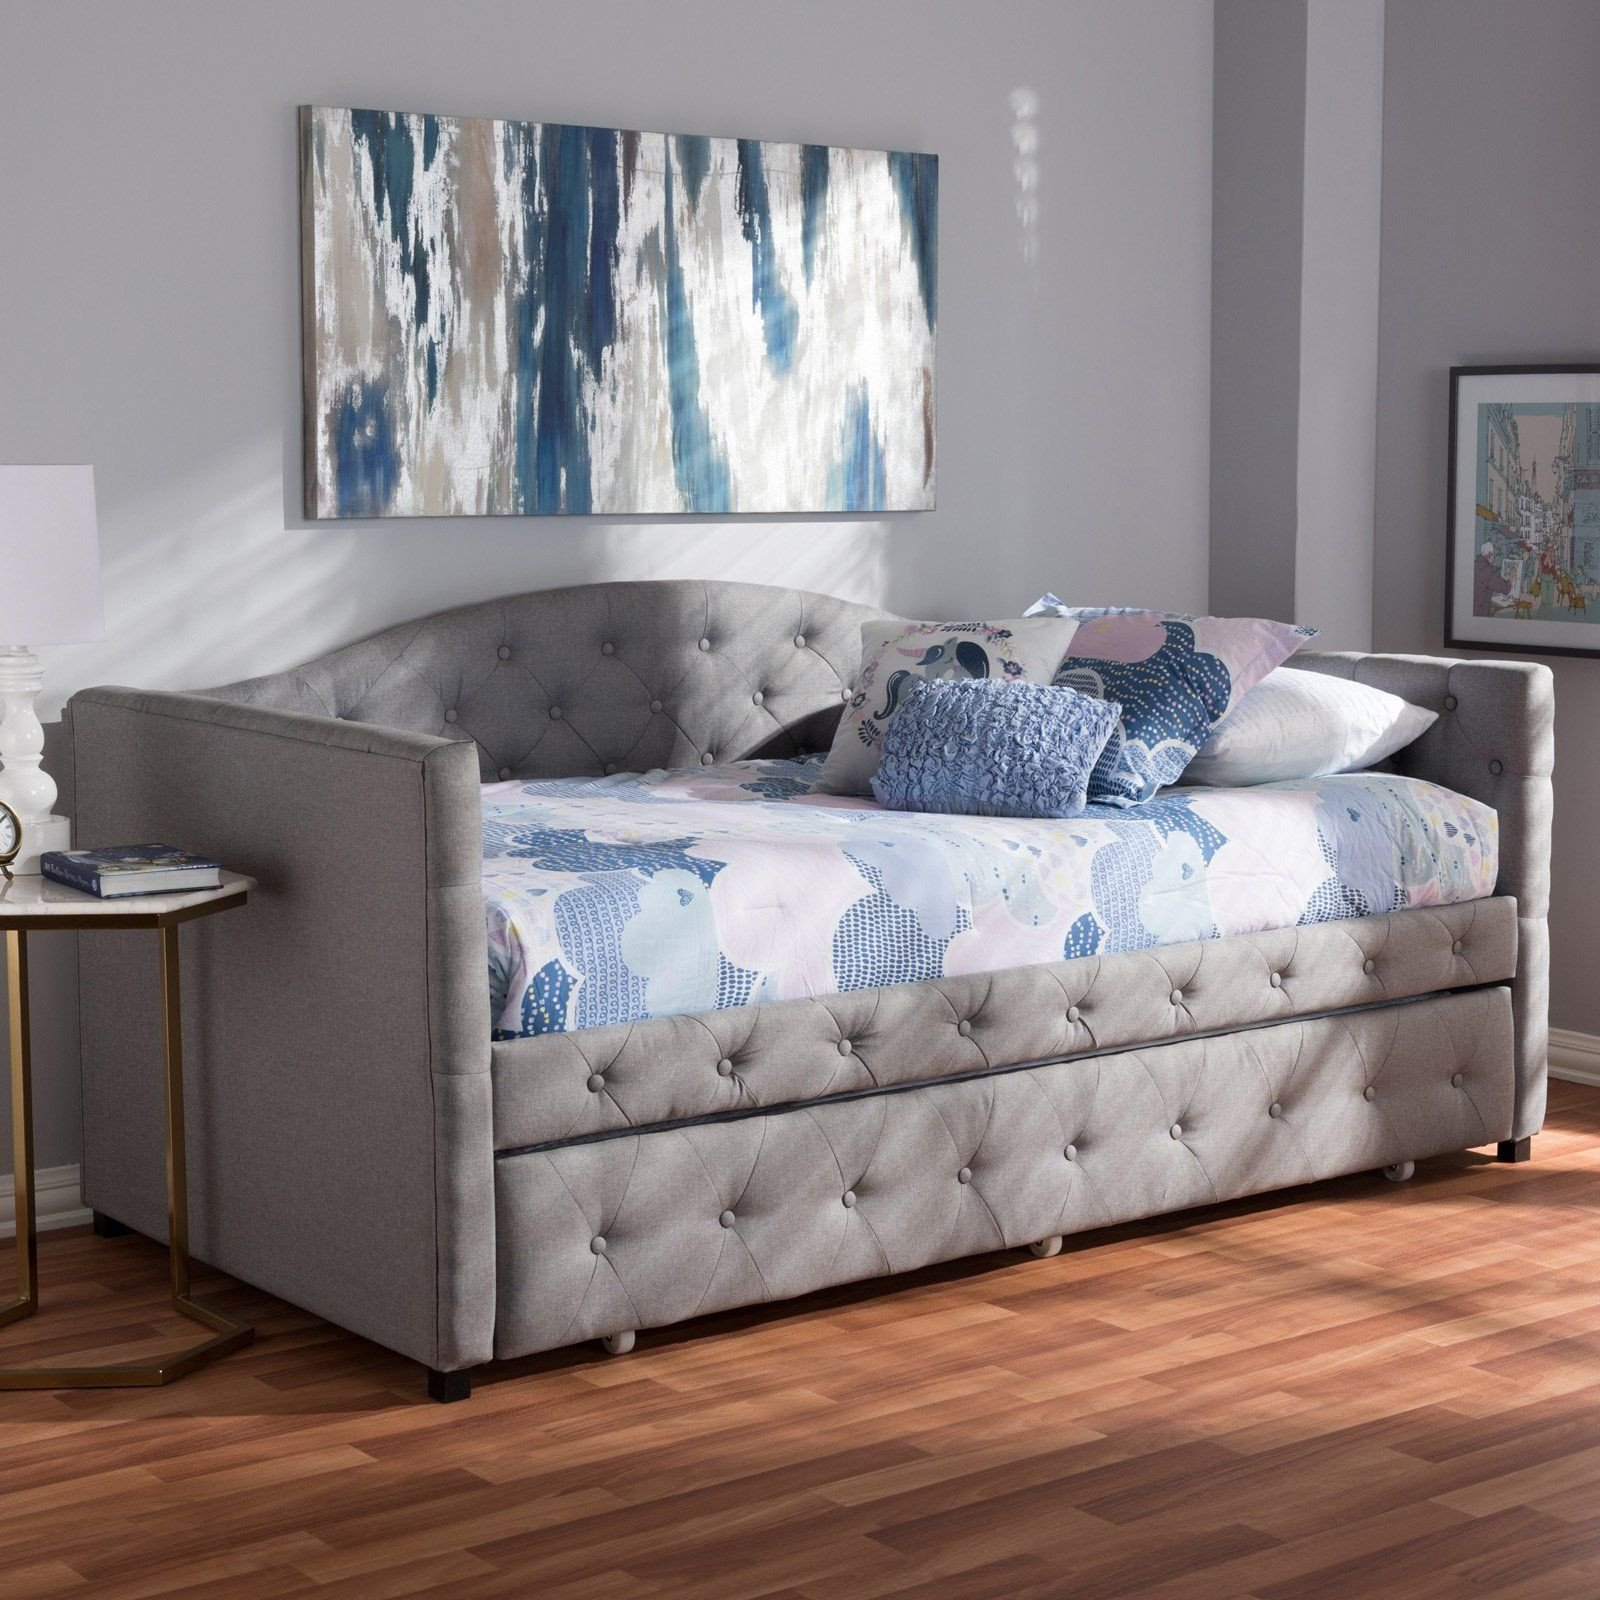 Bedroom Furniture Sale Clearance Inspirational Baxton Studio Gwendolyn Upholstered Daybed with Trundle In